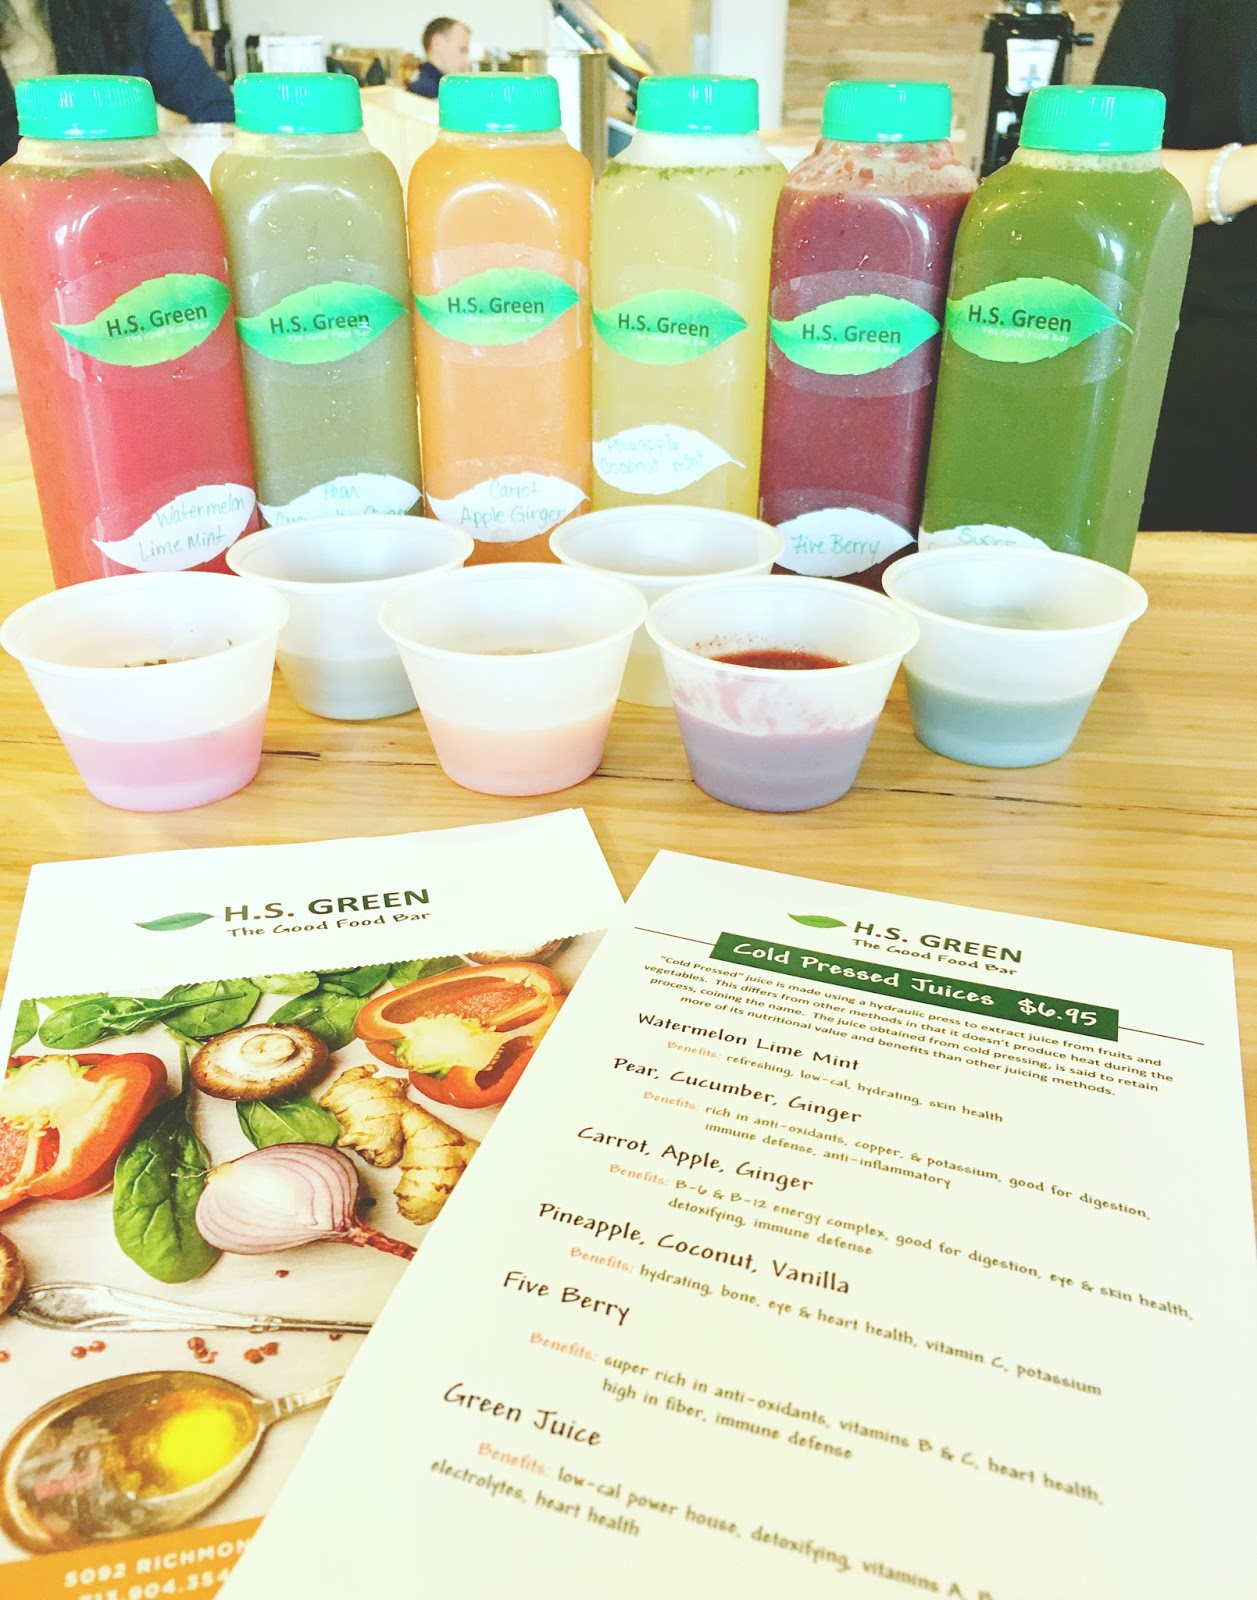 fresh juices at H.S. Green - A healthy restaurant in Houston, Texas